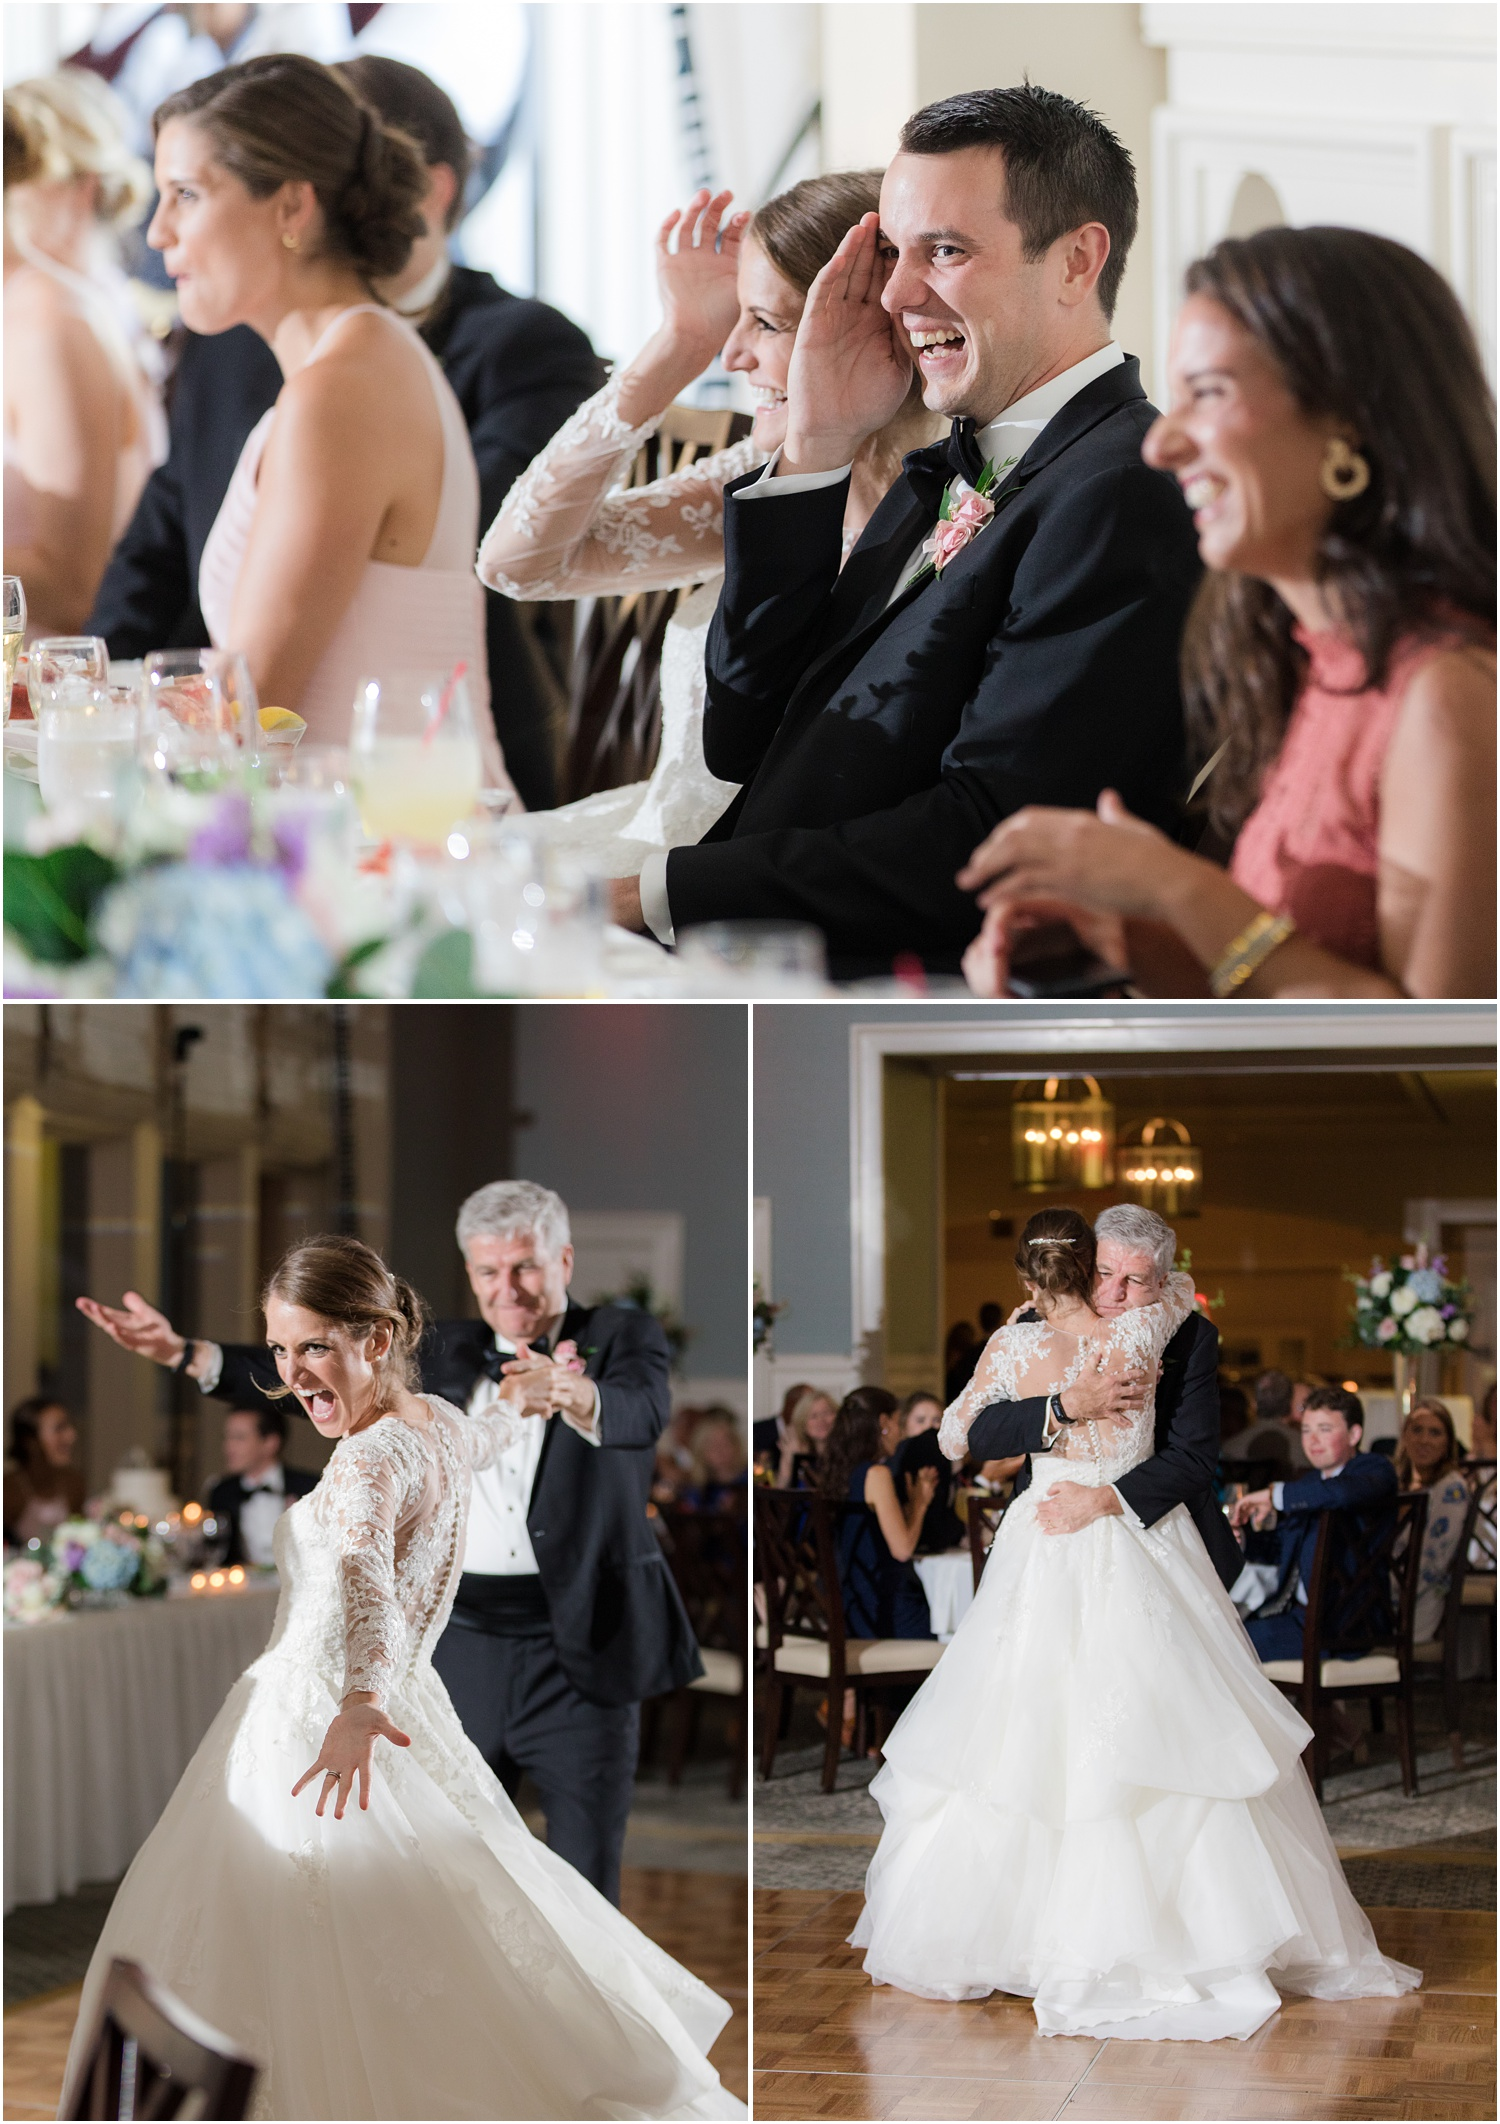 Father daughter dance at Canoe brook country club wedding reception.